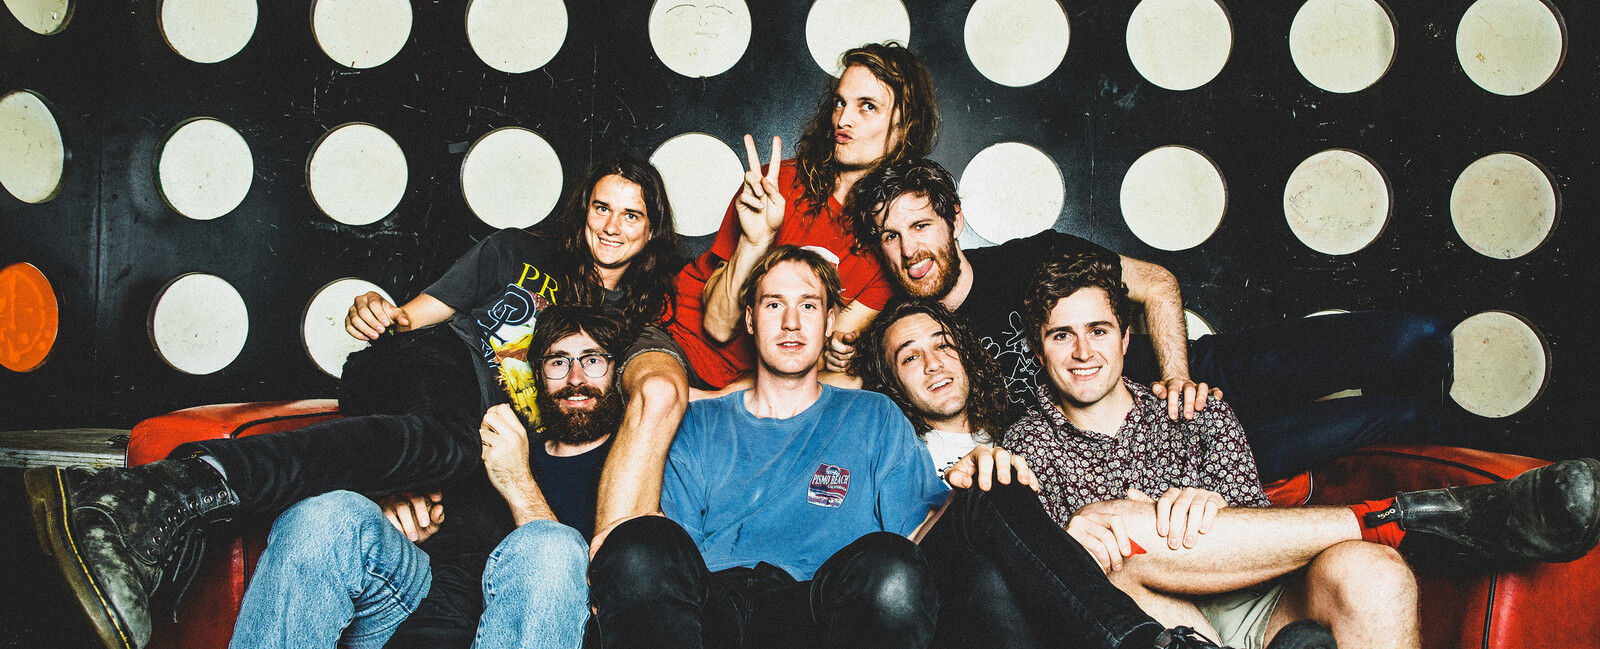 King Gizzard And The Lizard Wizard Tickets (15+ or accompanied by parent)